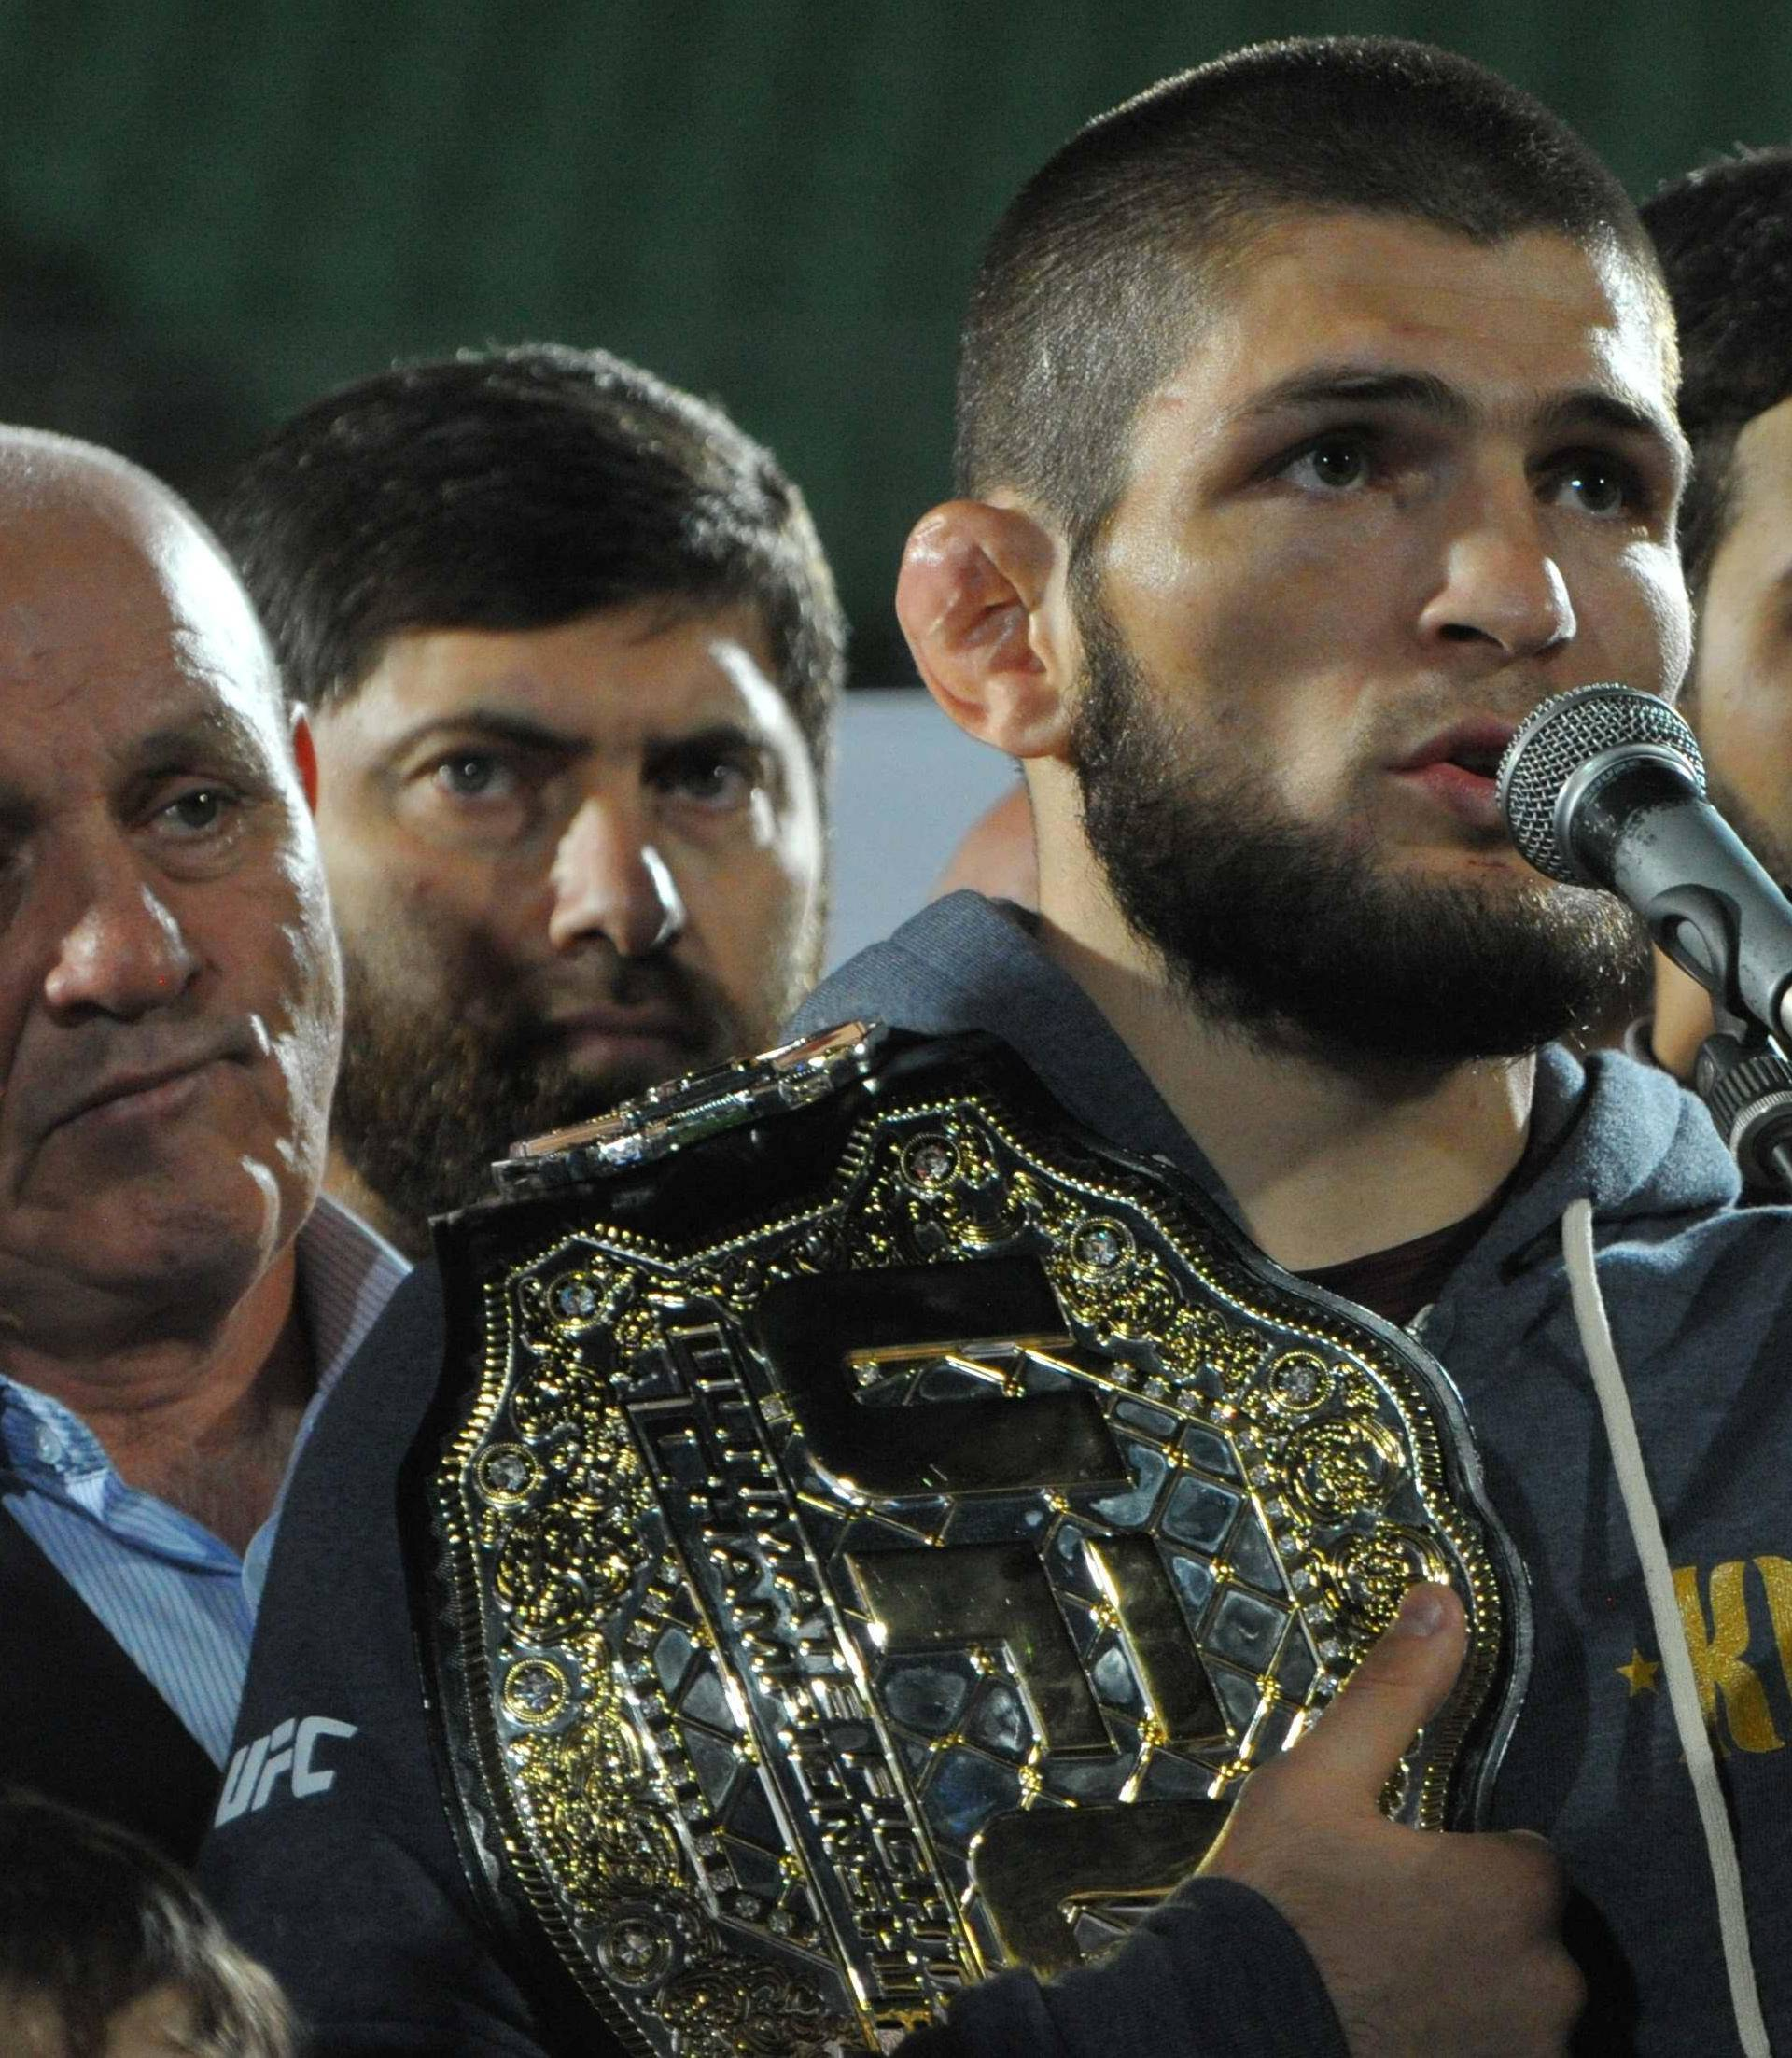 Russia's Nurmagomedov, UFC lightweight champion who defeated McGregor of Ireland in the main event of UFC 229, speaks during the ceremony of honouring him at Anzhi Arena in Kaspiysk